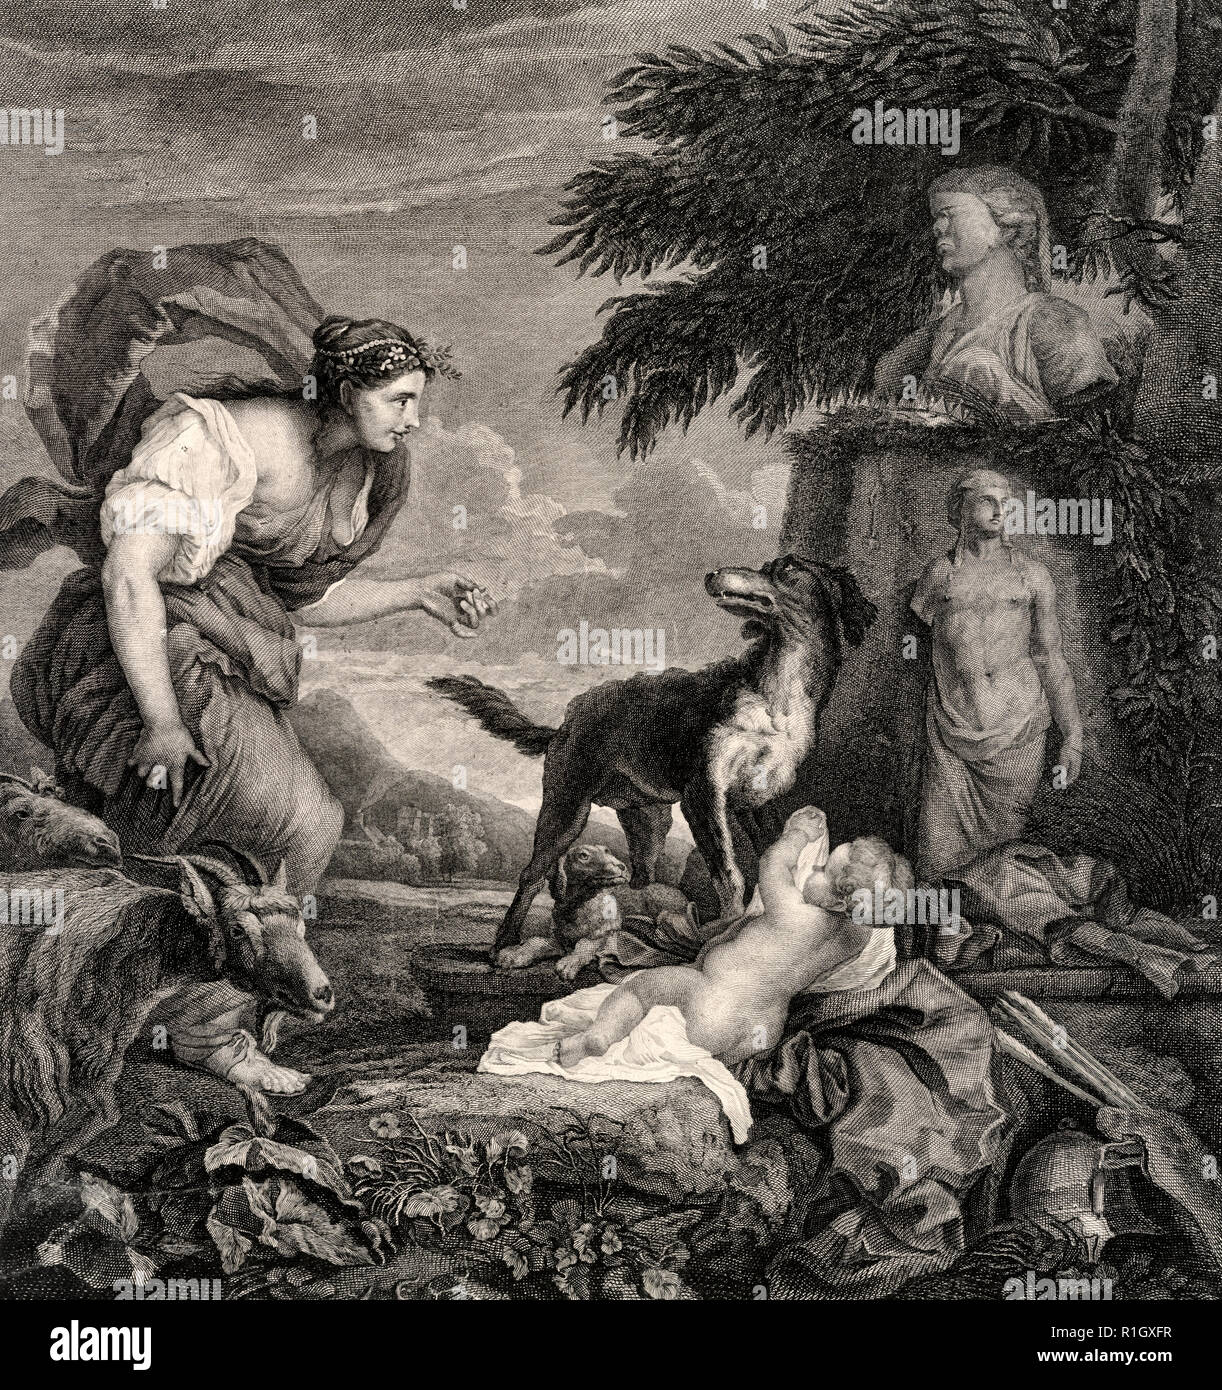 Woman with dogs, infant, and goats in the wilderness - 	Print shows a shepherdess with goats, praising her dog for finding an infant among antique statues and armaments in the wilderness. Includes a remarque at bottom center showing a coat-of-arms, topped with crown, and with two greyhounds standing at the sides. - Stock Image